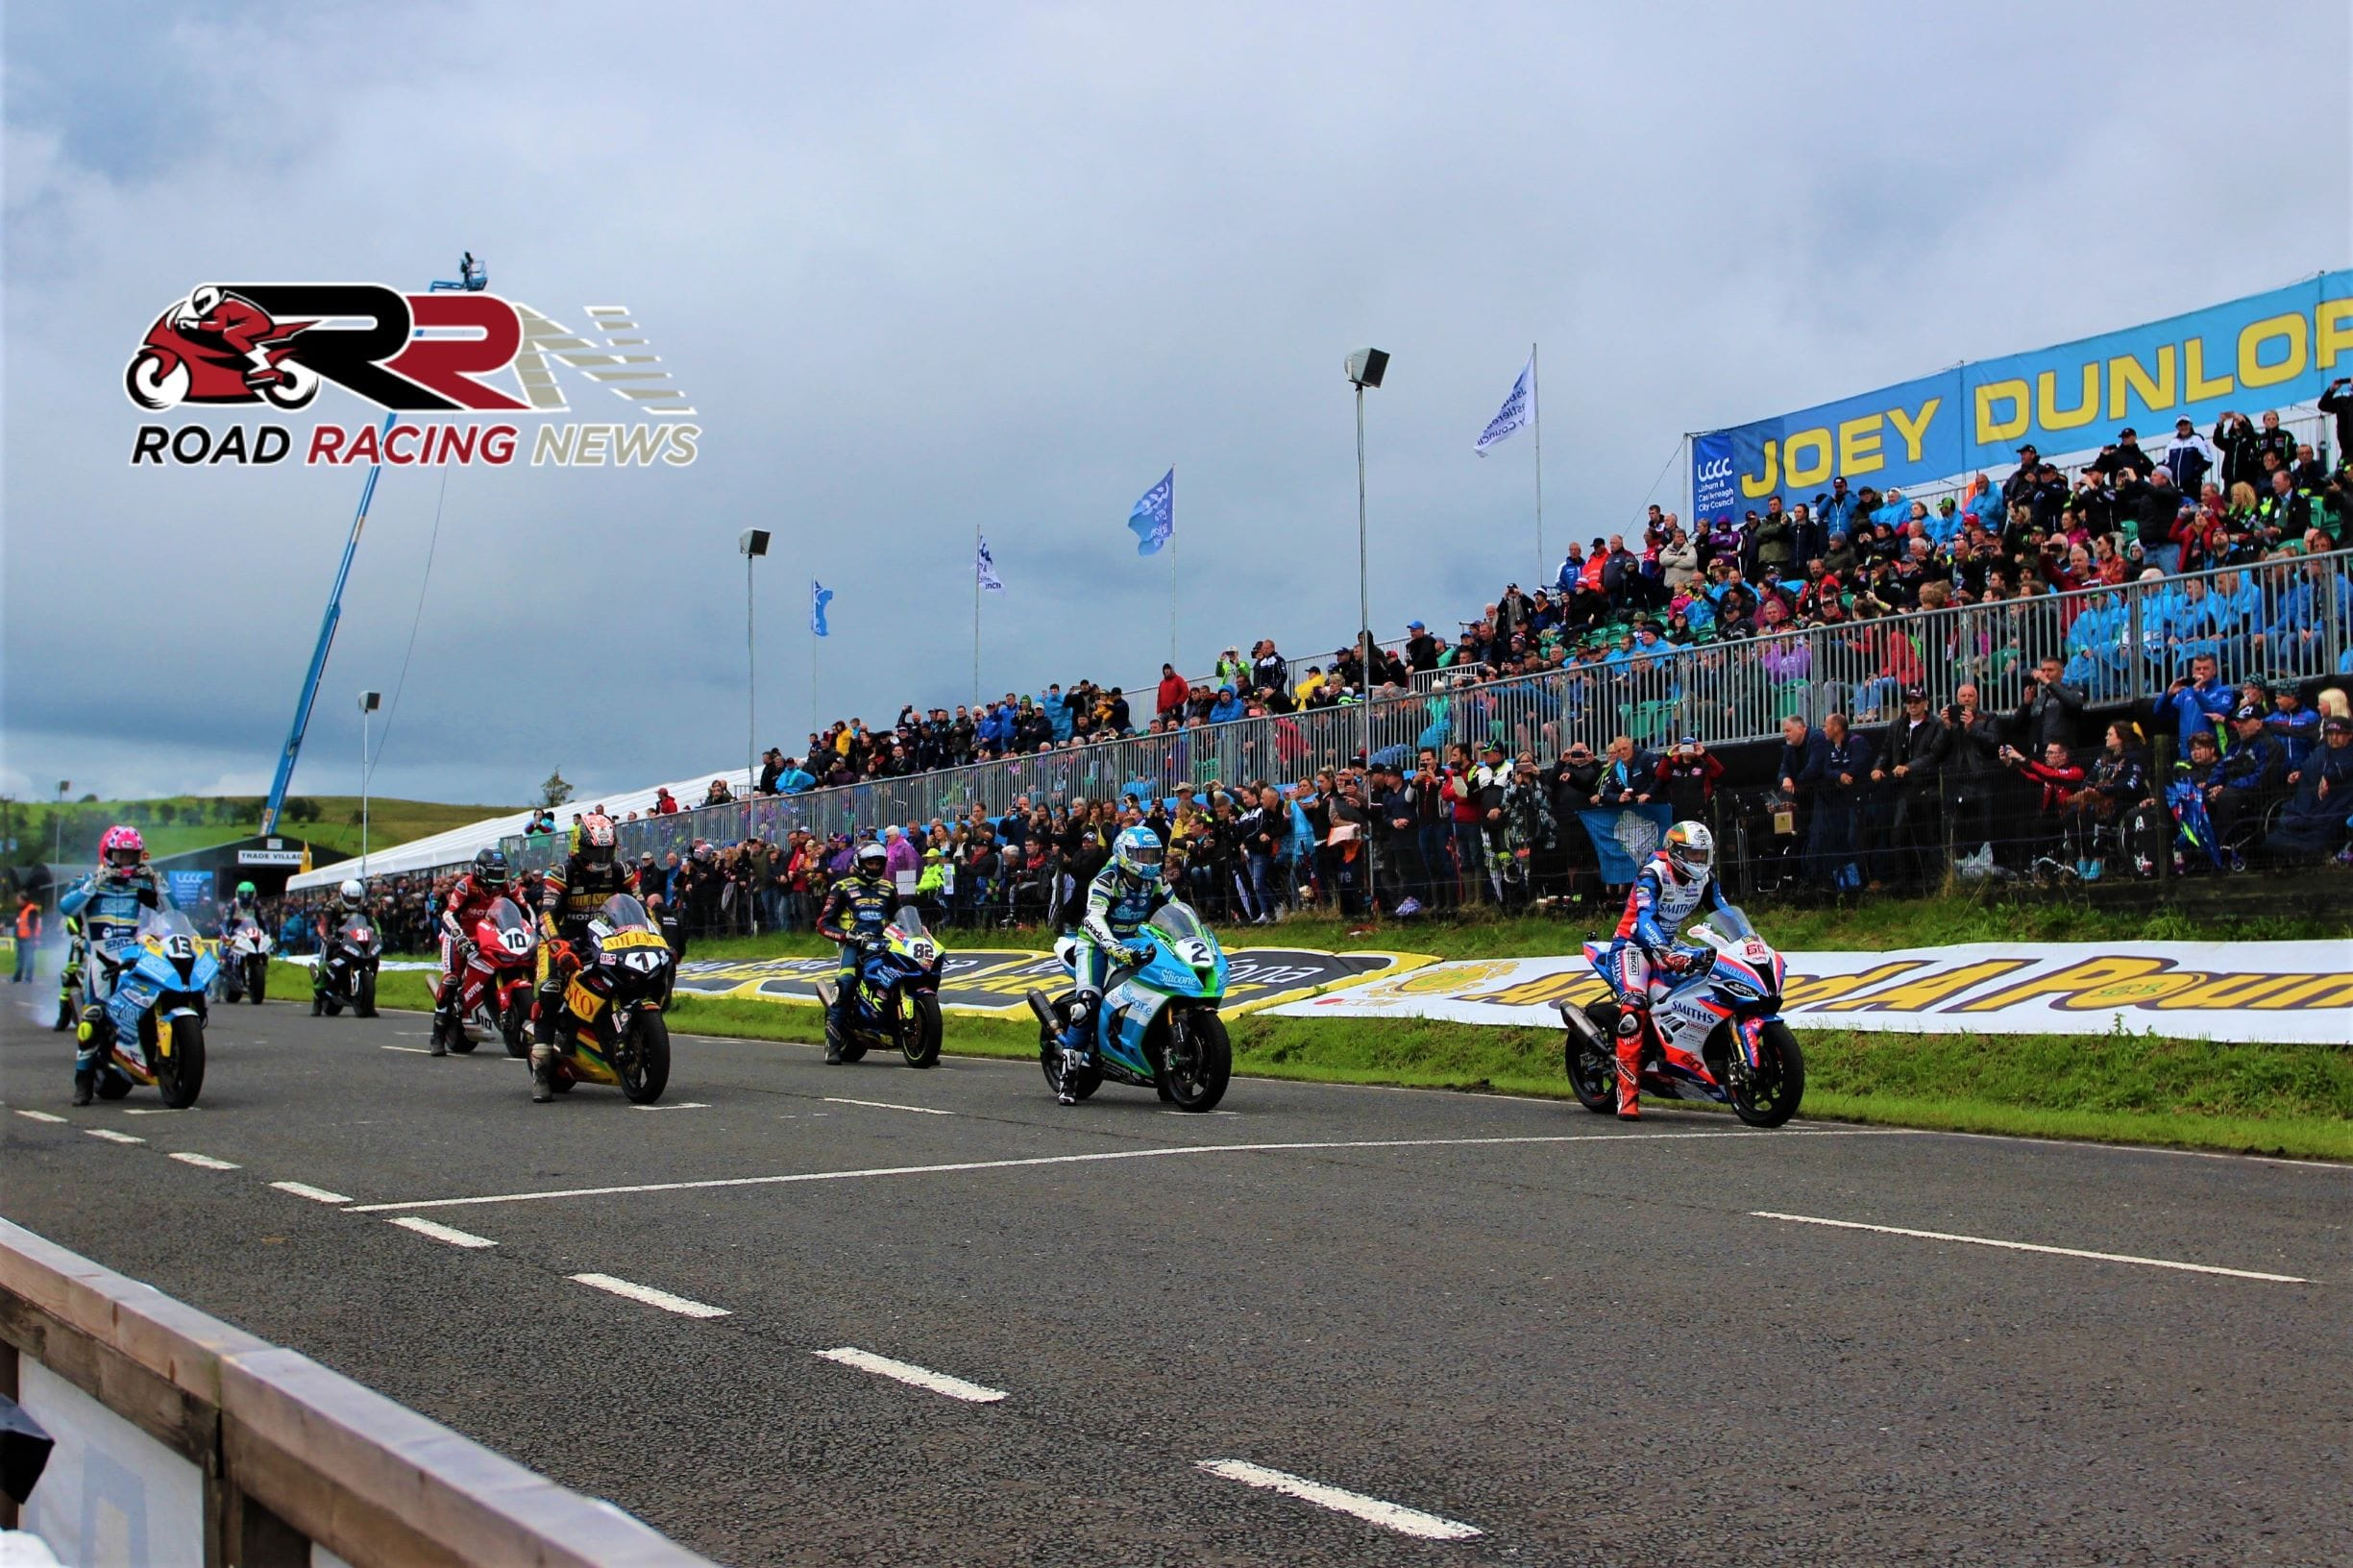 Viewpoint: Tough Times Presently For The Ulster GP But We Shouldn't Give Up On The World's Fastest Road Race